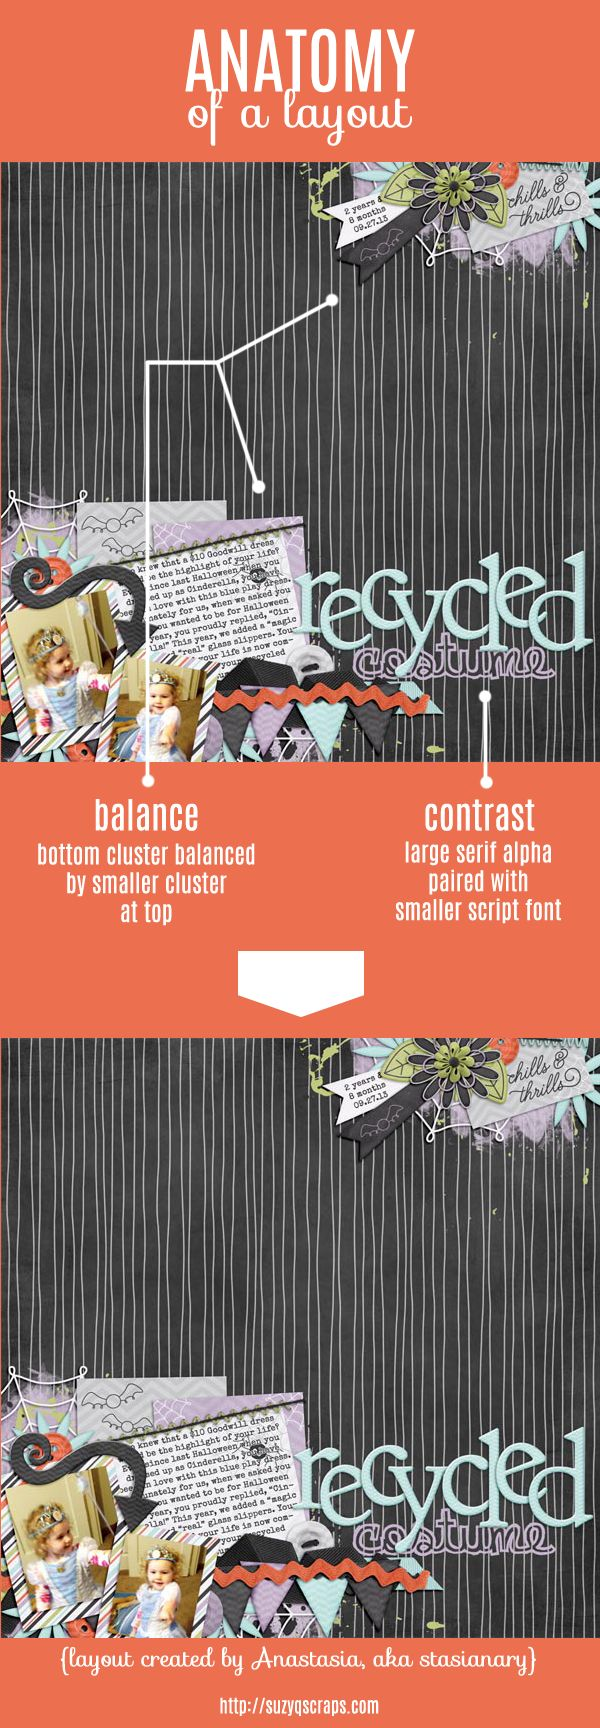 Scrapbook ideas and tips - Anatomy Of A Layout Improve Your Scrapbook Page Designs With Visual Triangles Balance